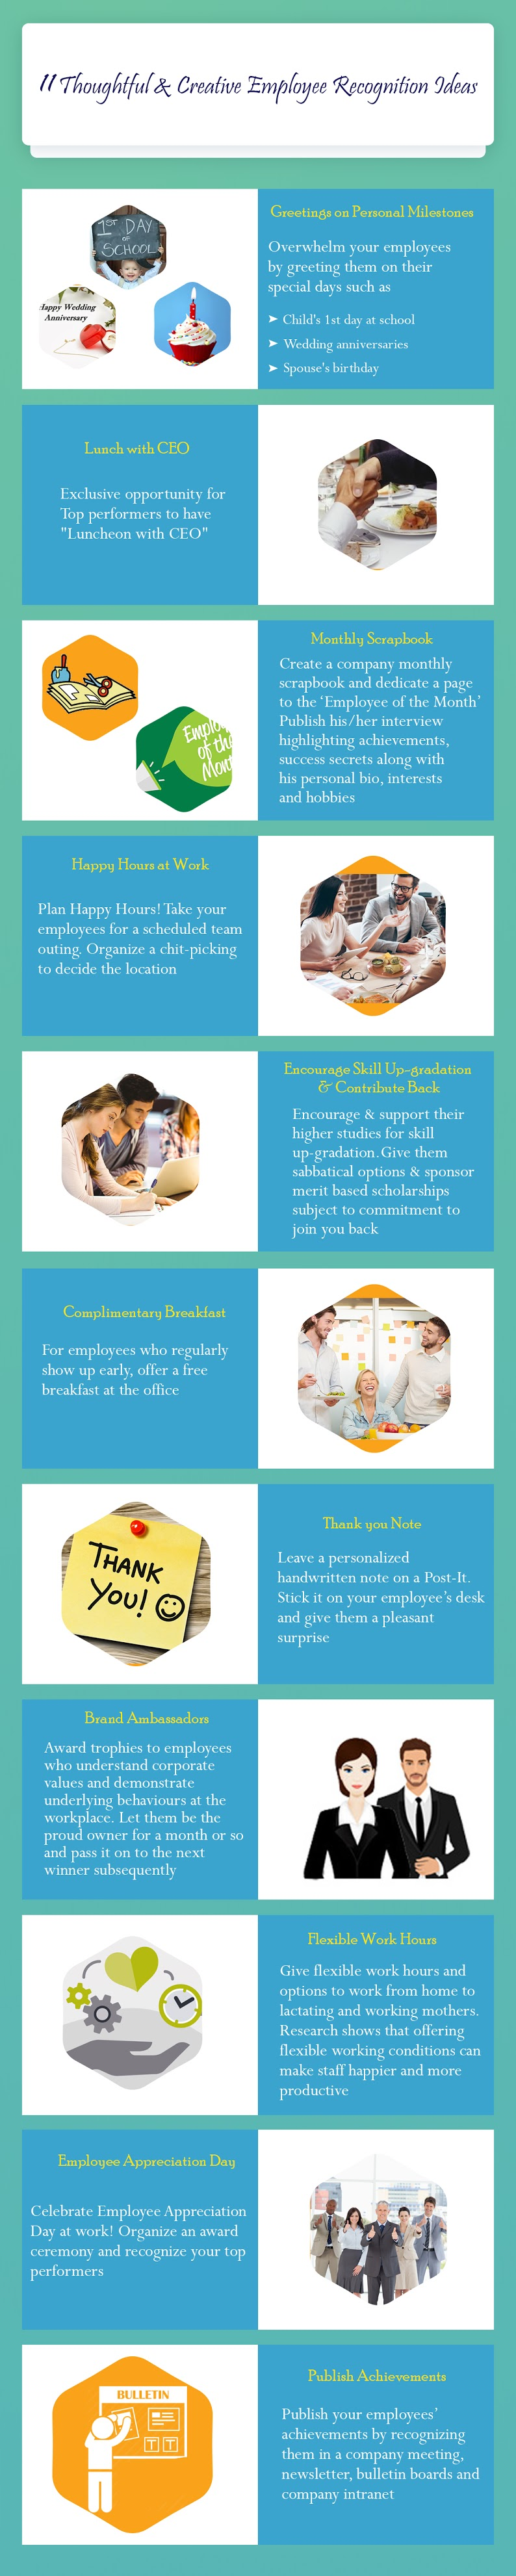 Employee-Recognition-Ideas.jpg